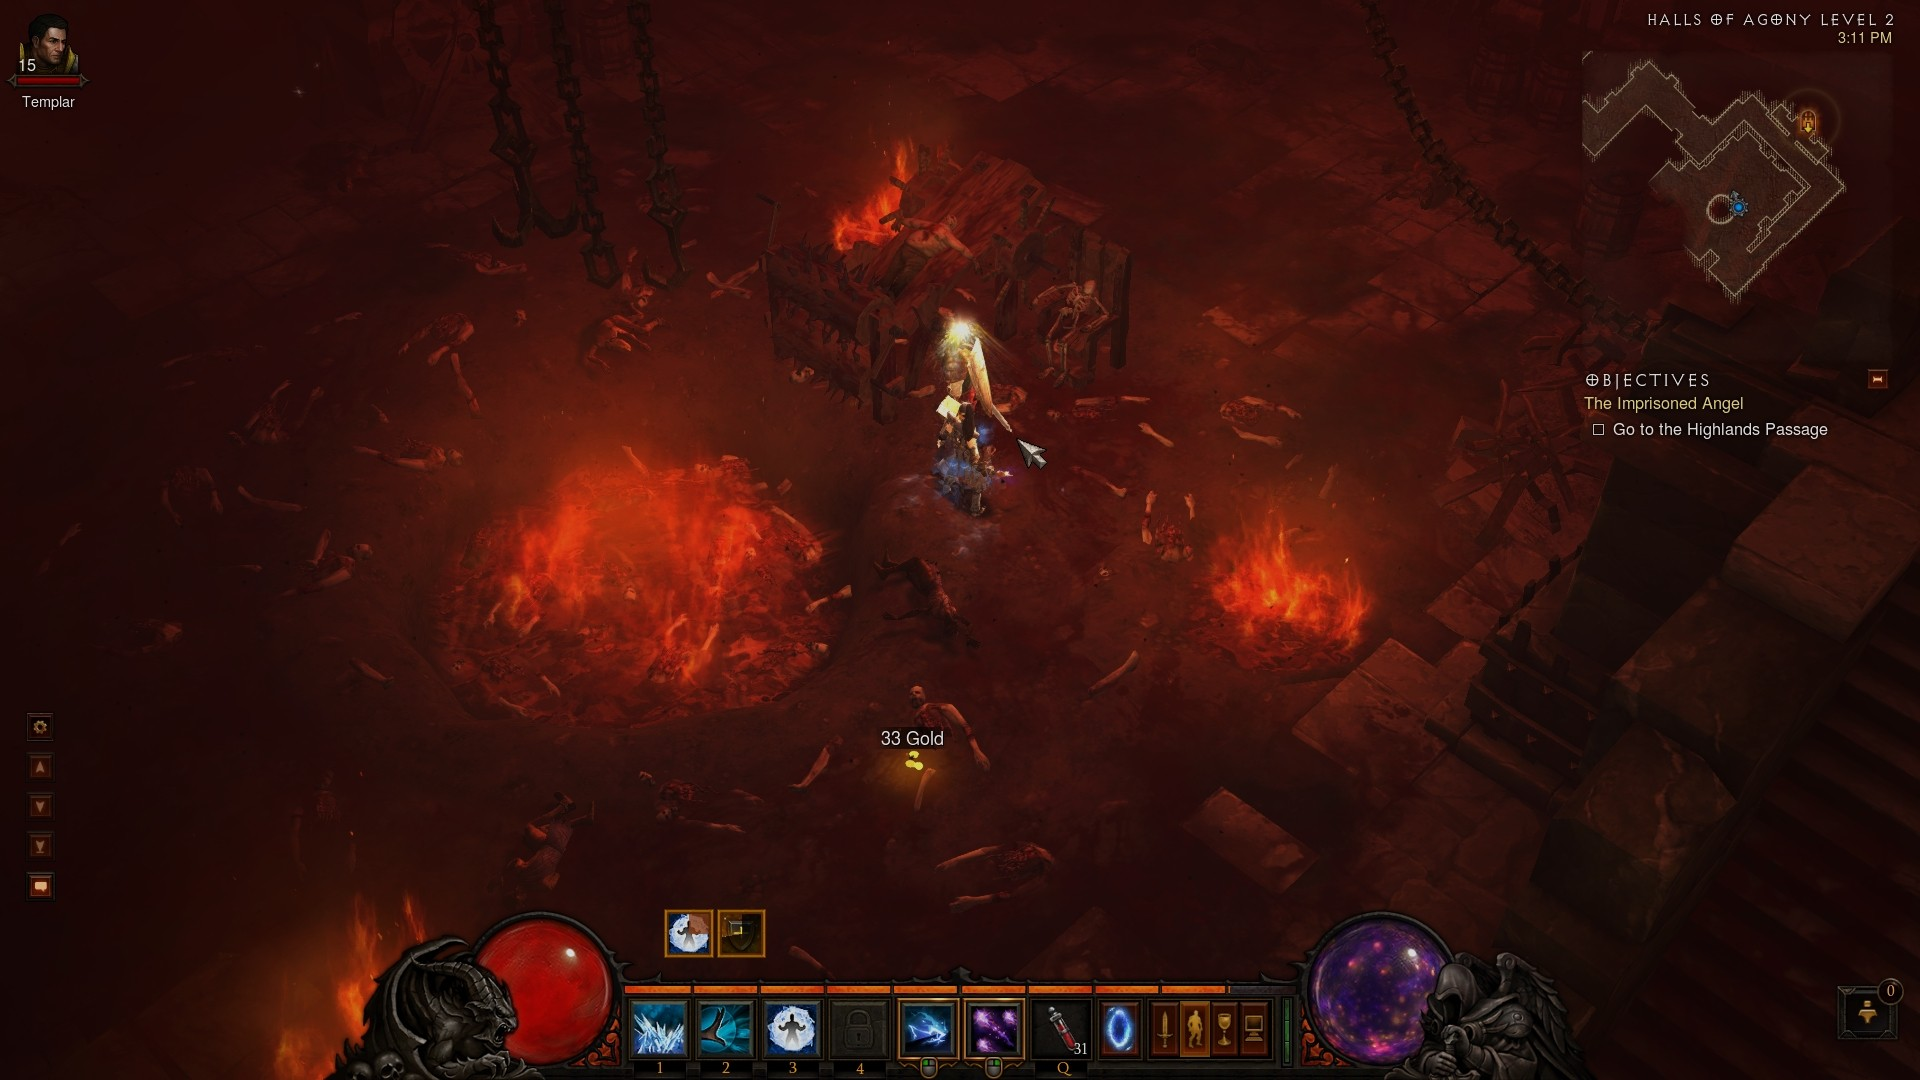 Diablo 3 - Yup, no dark, gritty, adult environments here!